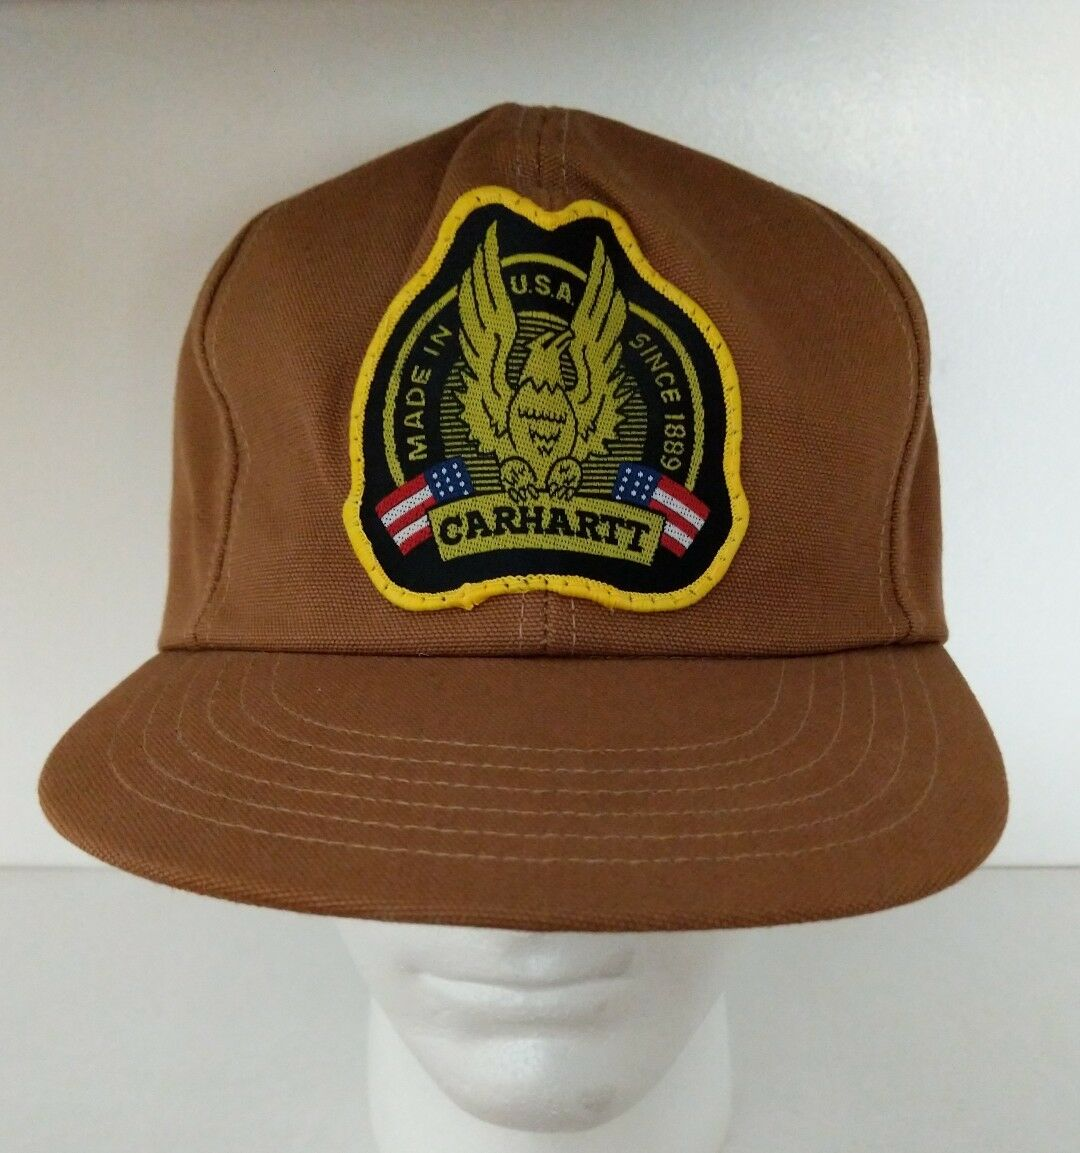 Carhartt Baseball Hat Cap Snapback Made in in in USA 1889 VTG 70s Canvas Eagle Patch 97485a